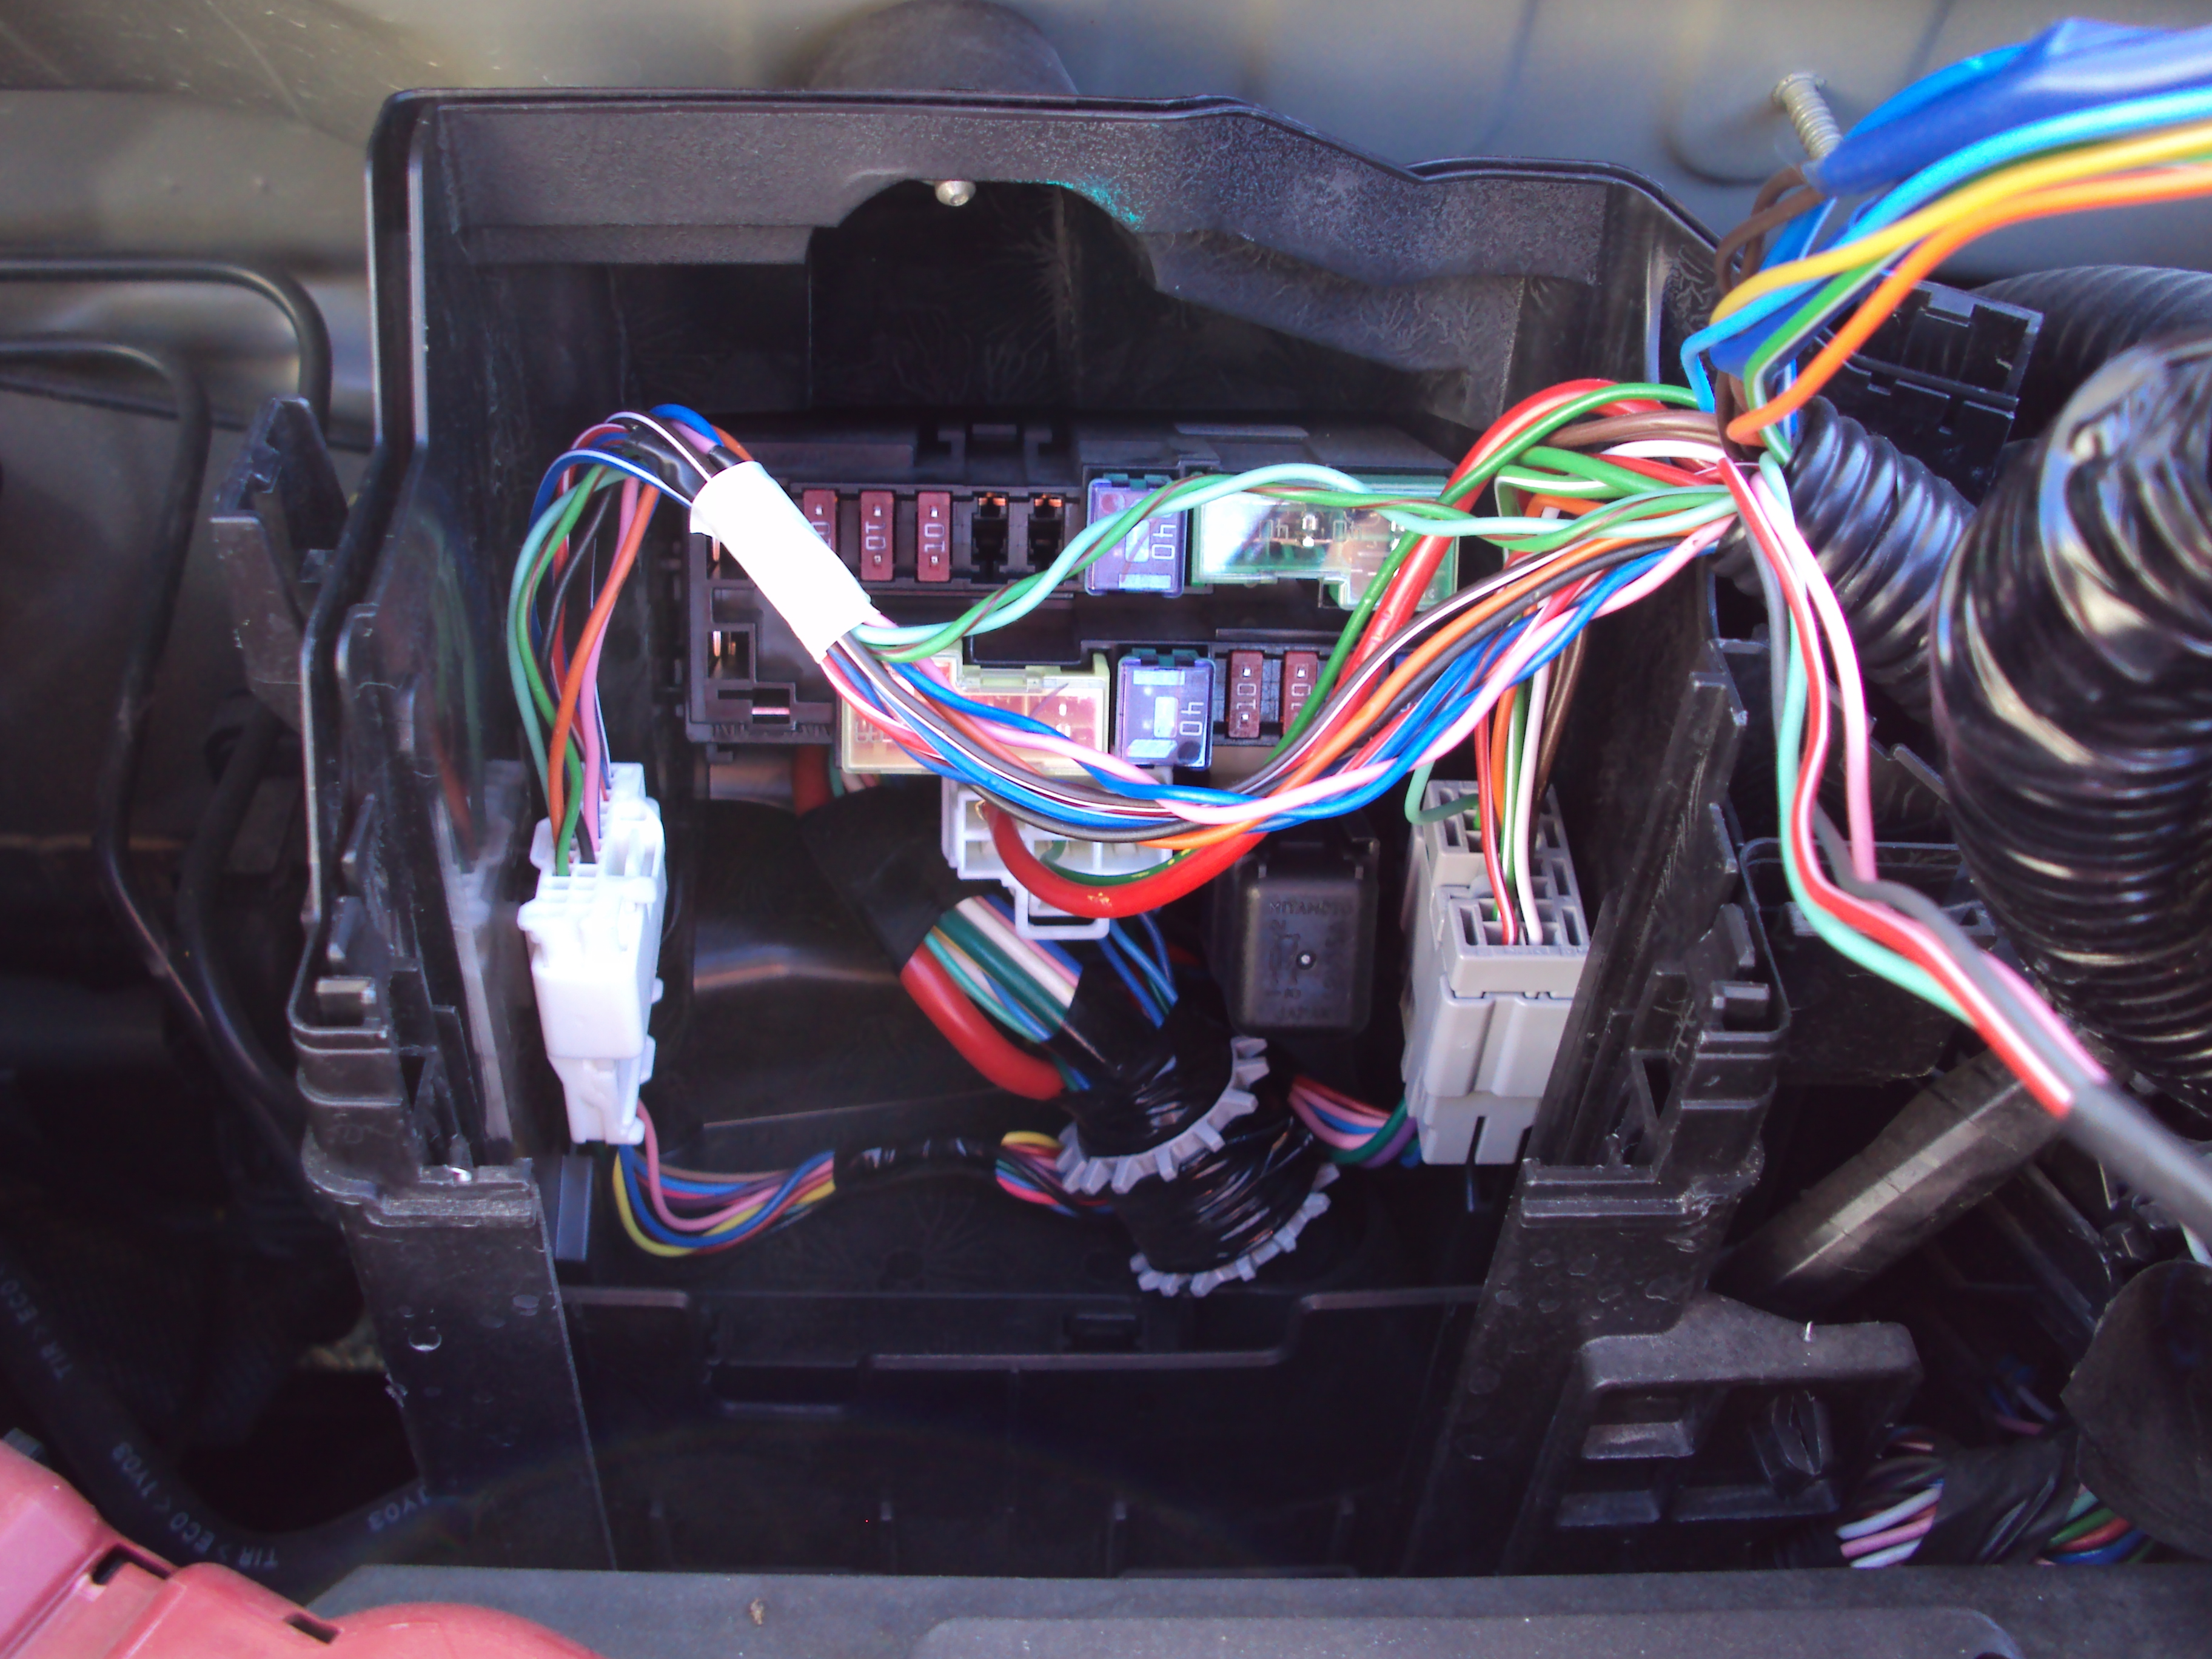 guide to find all the fuses interior fuse box and engine bay fuse rh micra org uk nissan micra 2003 fuse box diagram Lips Nissan Micra